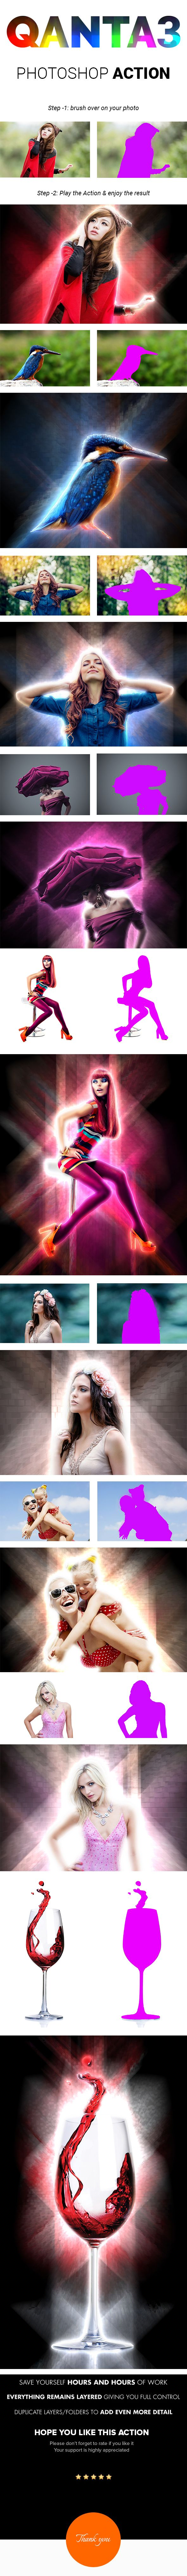 QANTA3   light glowing Effect Photoshop Actions. Download here: http://graphicriver.net/item/qanta3-light-glowing-effect-photoshop-actions/16224806?ref=ksioks